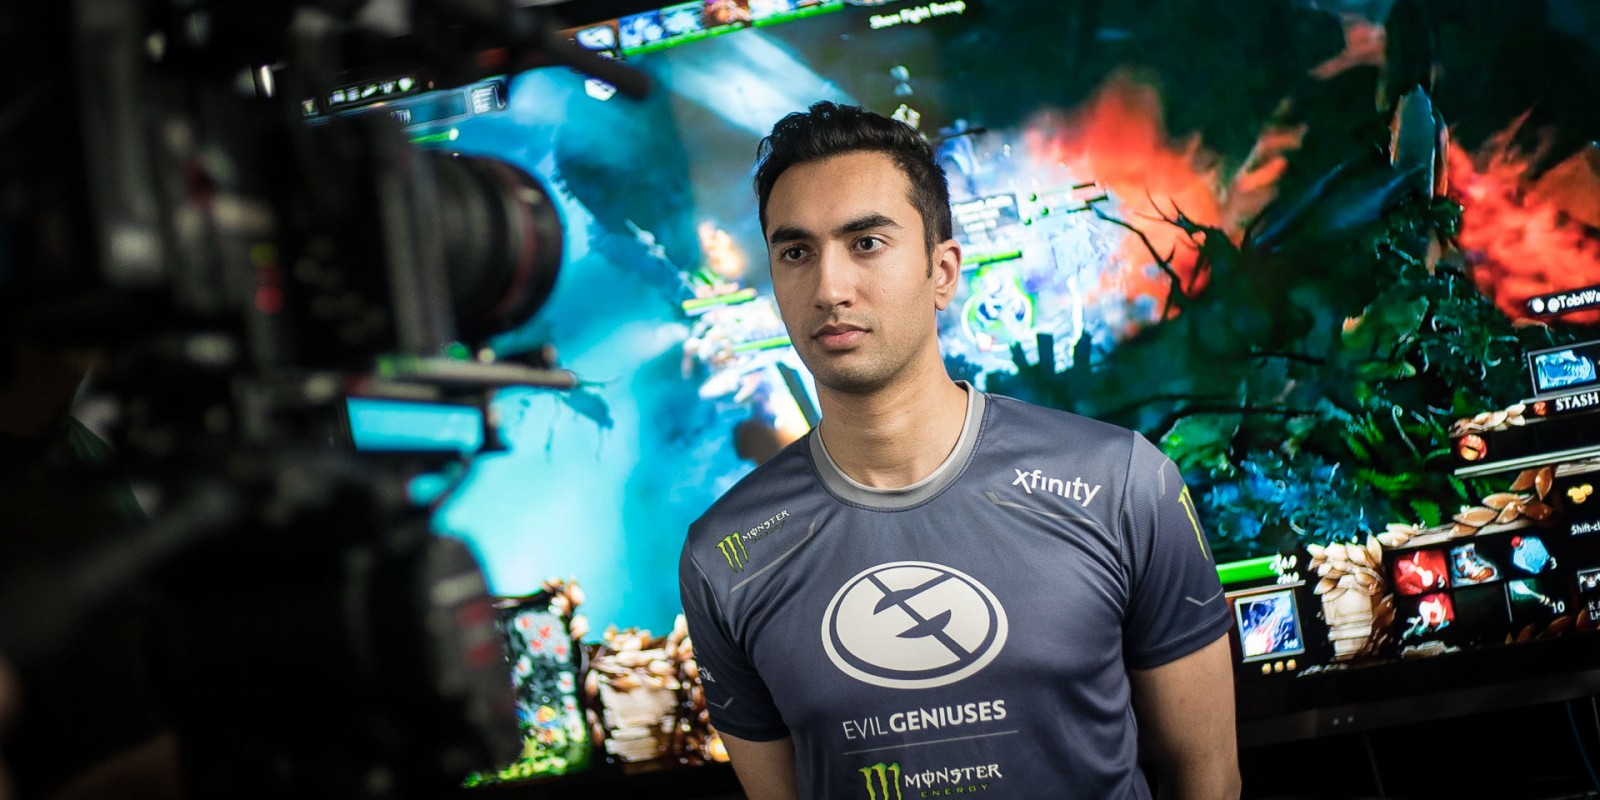 Behind the scenes photos from the UNiVeRsE Interview at the Evil Geniuses house.